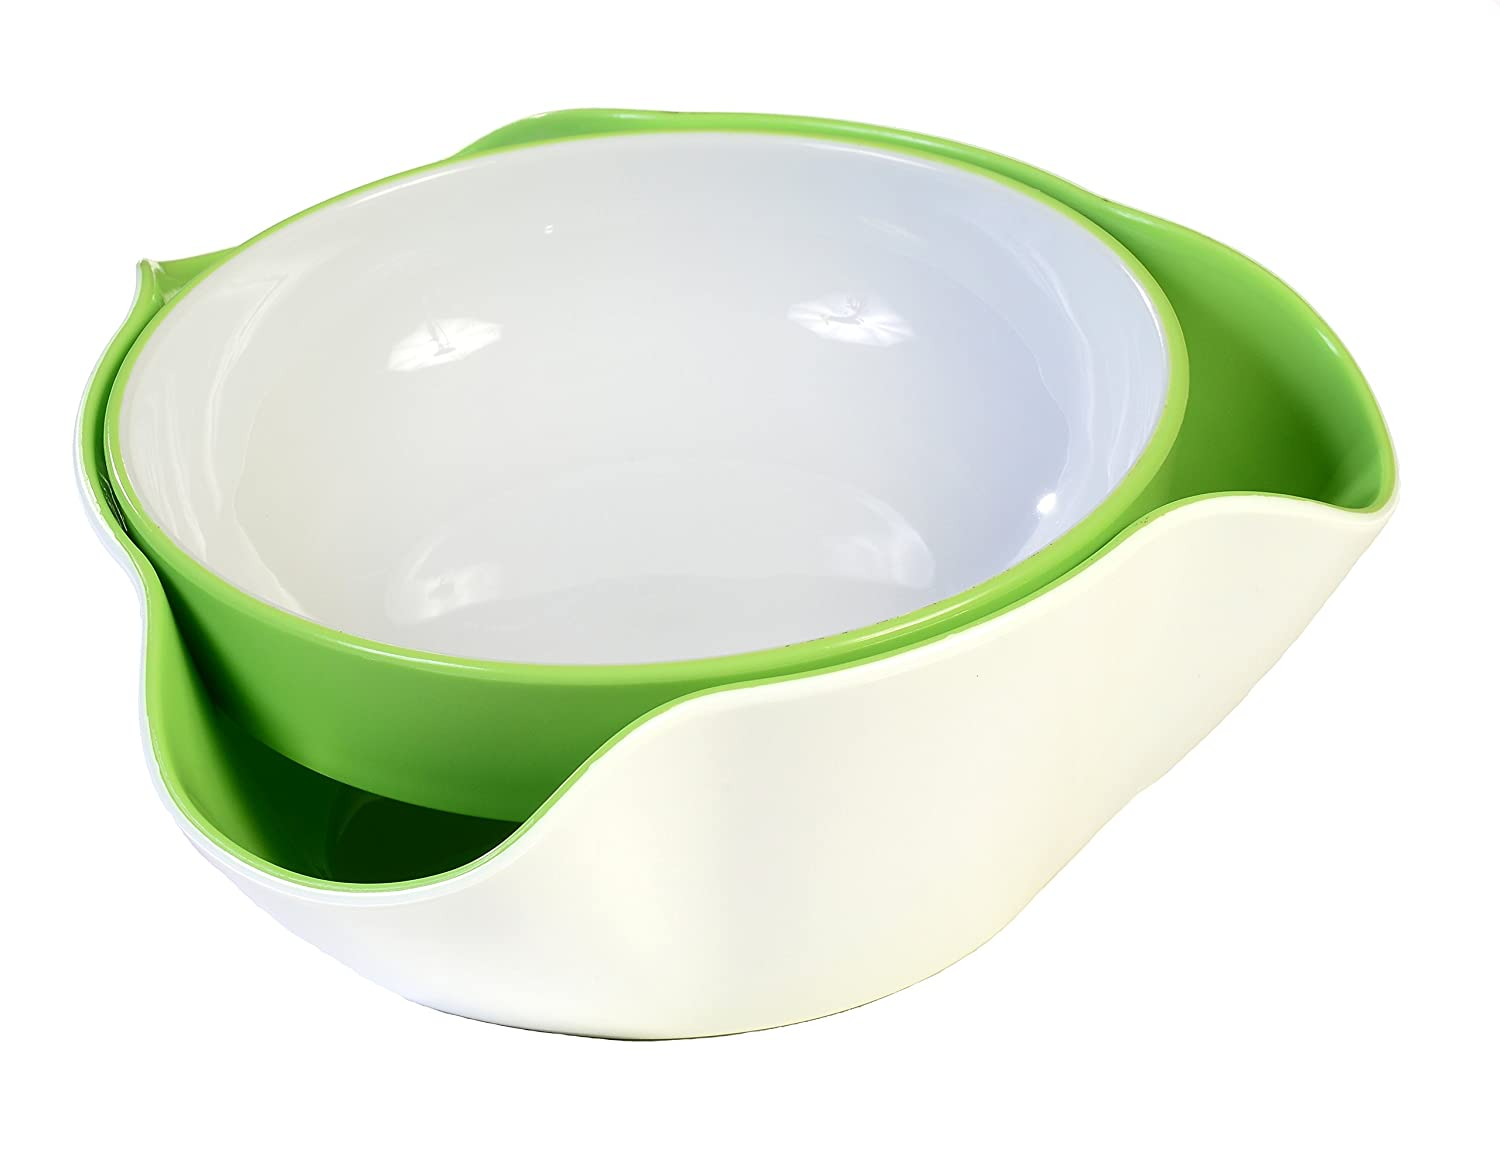 White and Green Double Dish Serving Bowl for Pistachios, Peanuts, Edamame, Cherries, Nuts, Fruits and Candy